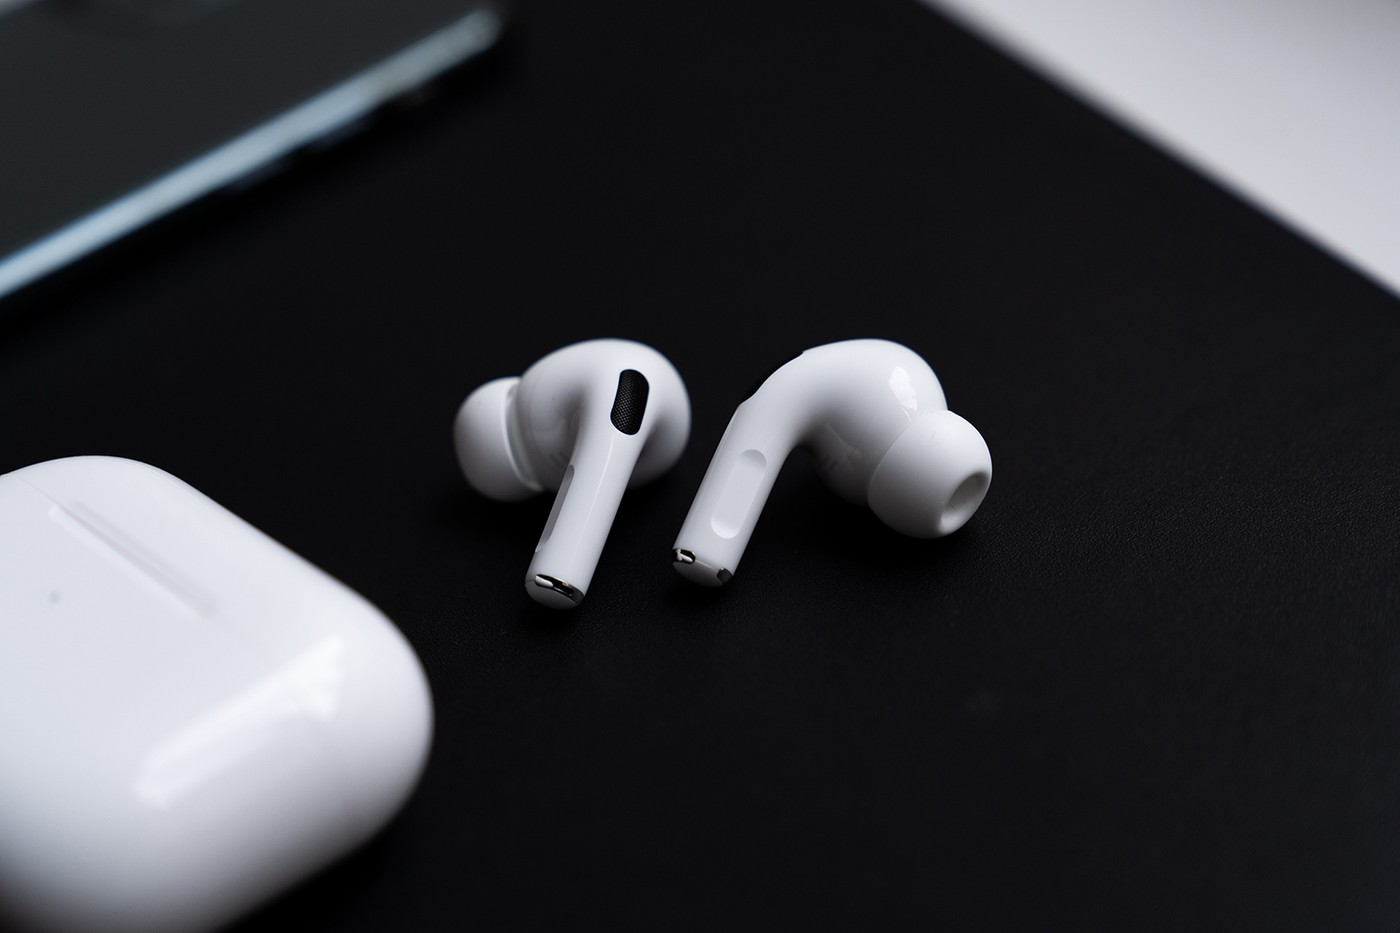 apple airpods pro sold out online stores